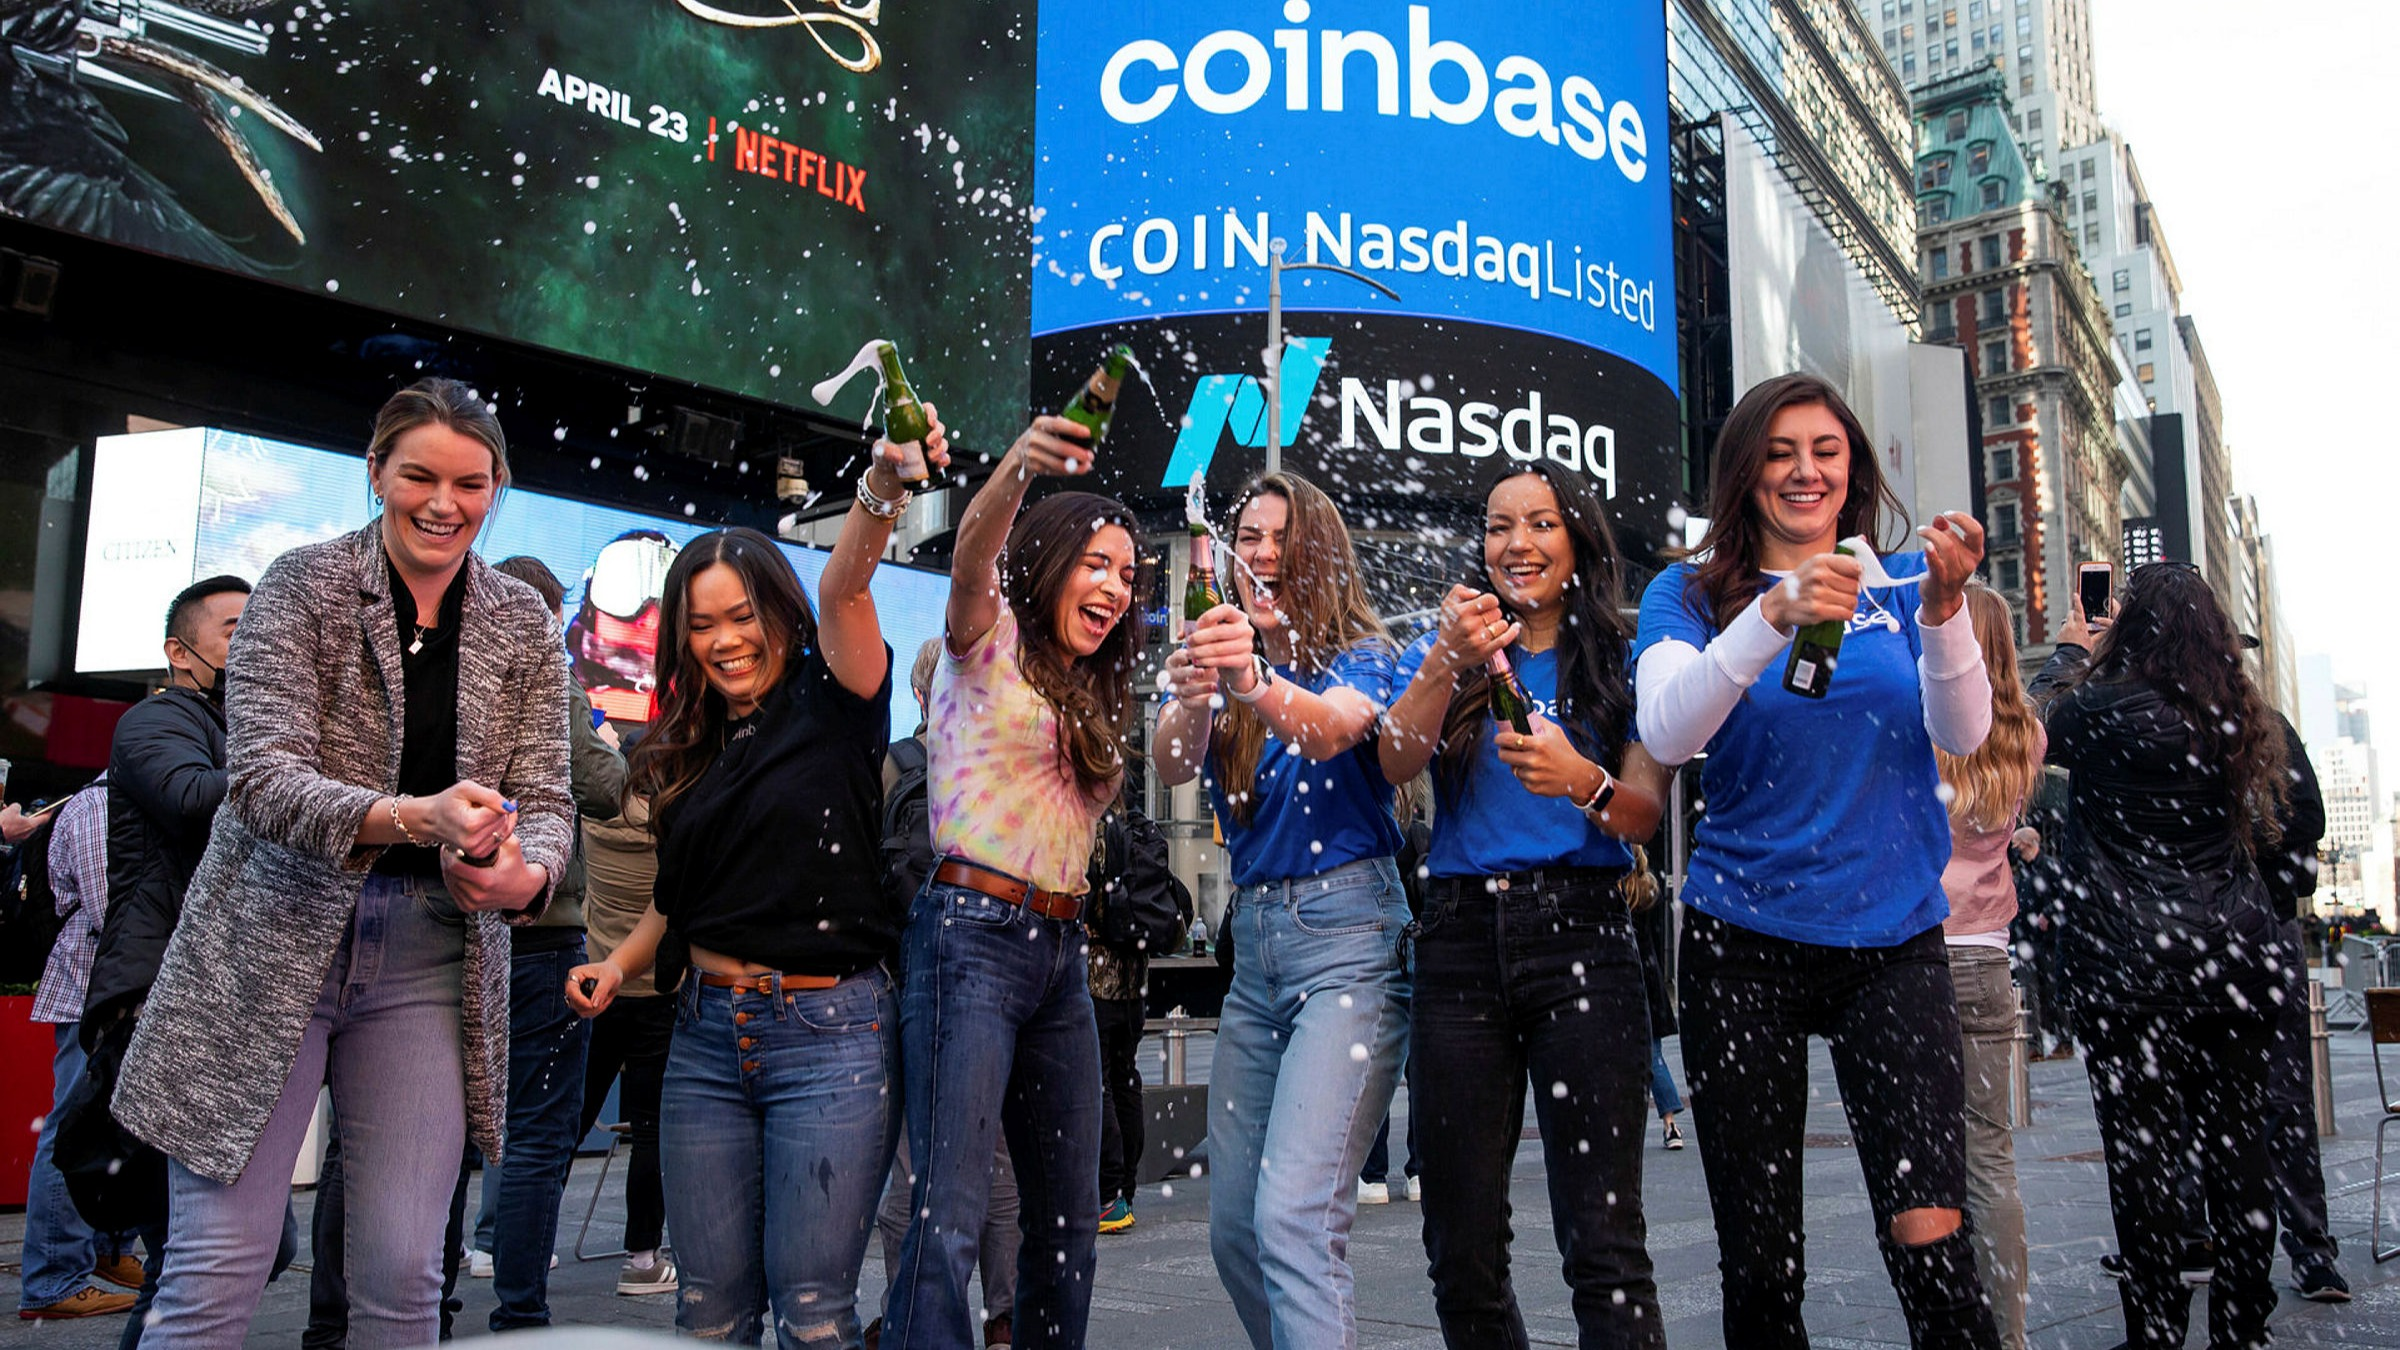 Coinbase Office Building